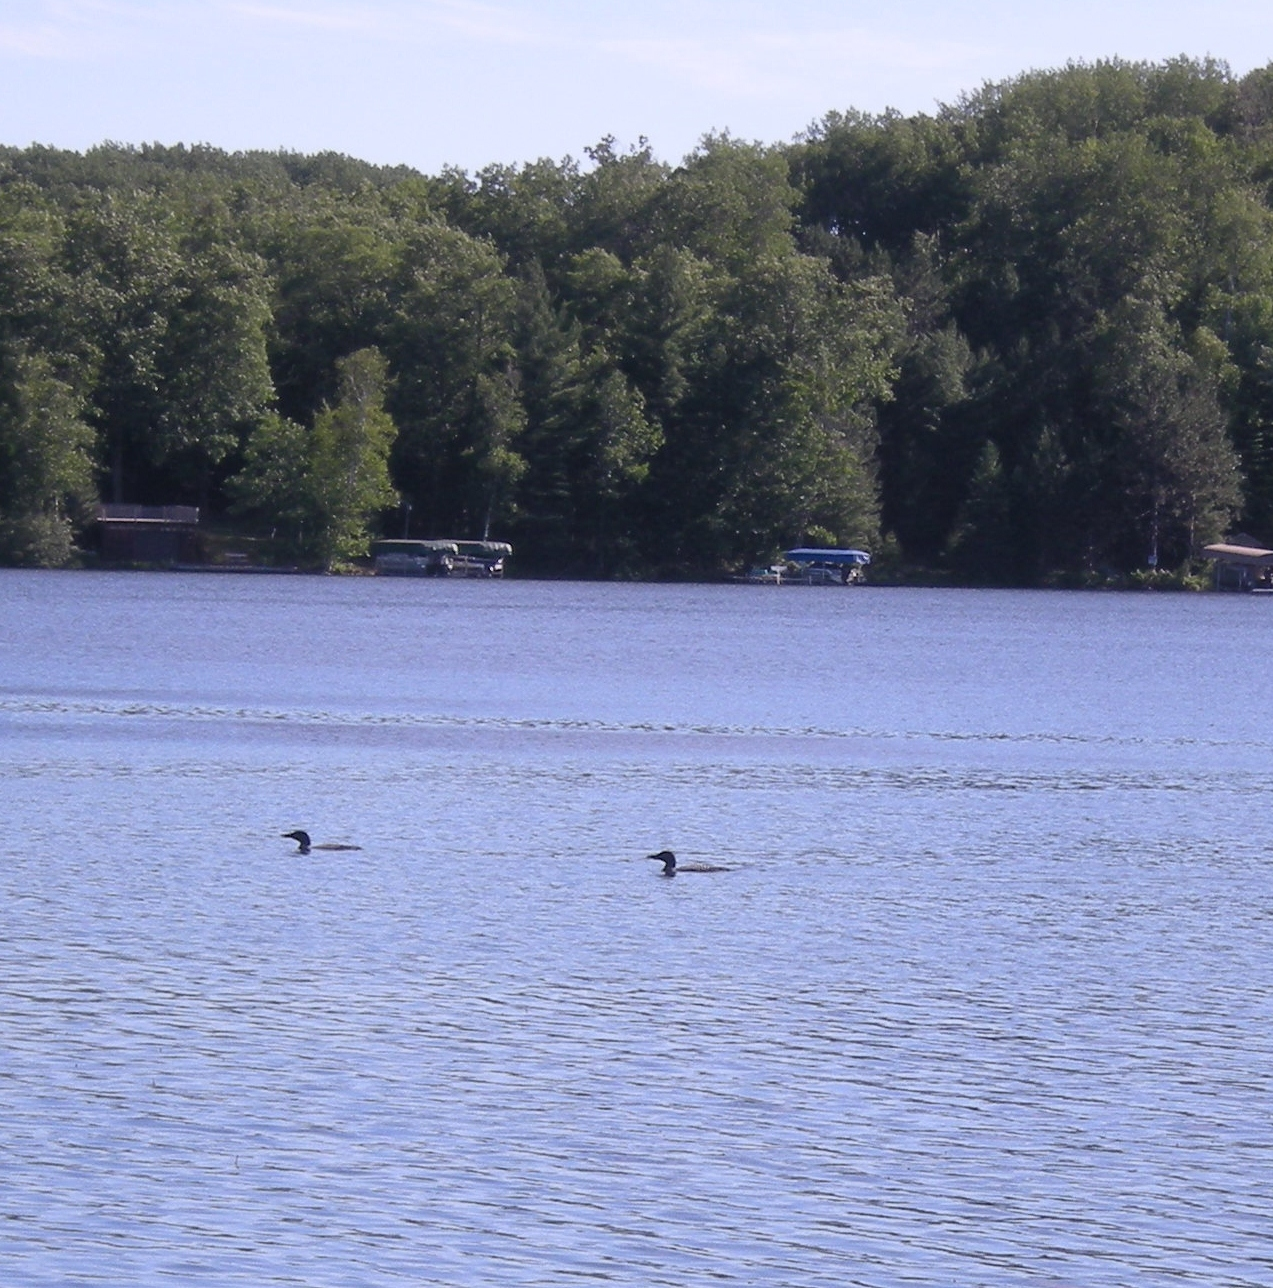 a pair of loons! They have been getting so close to the dock.